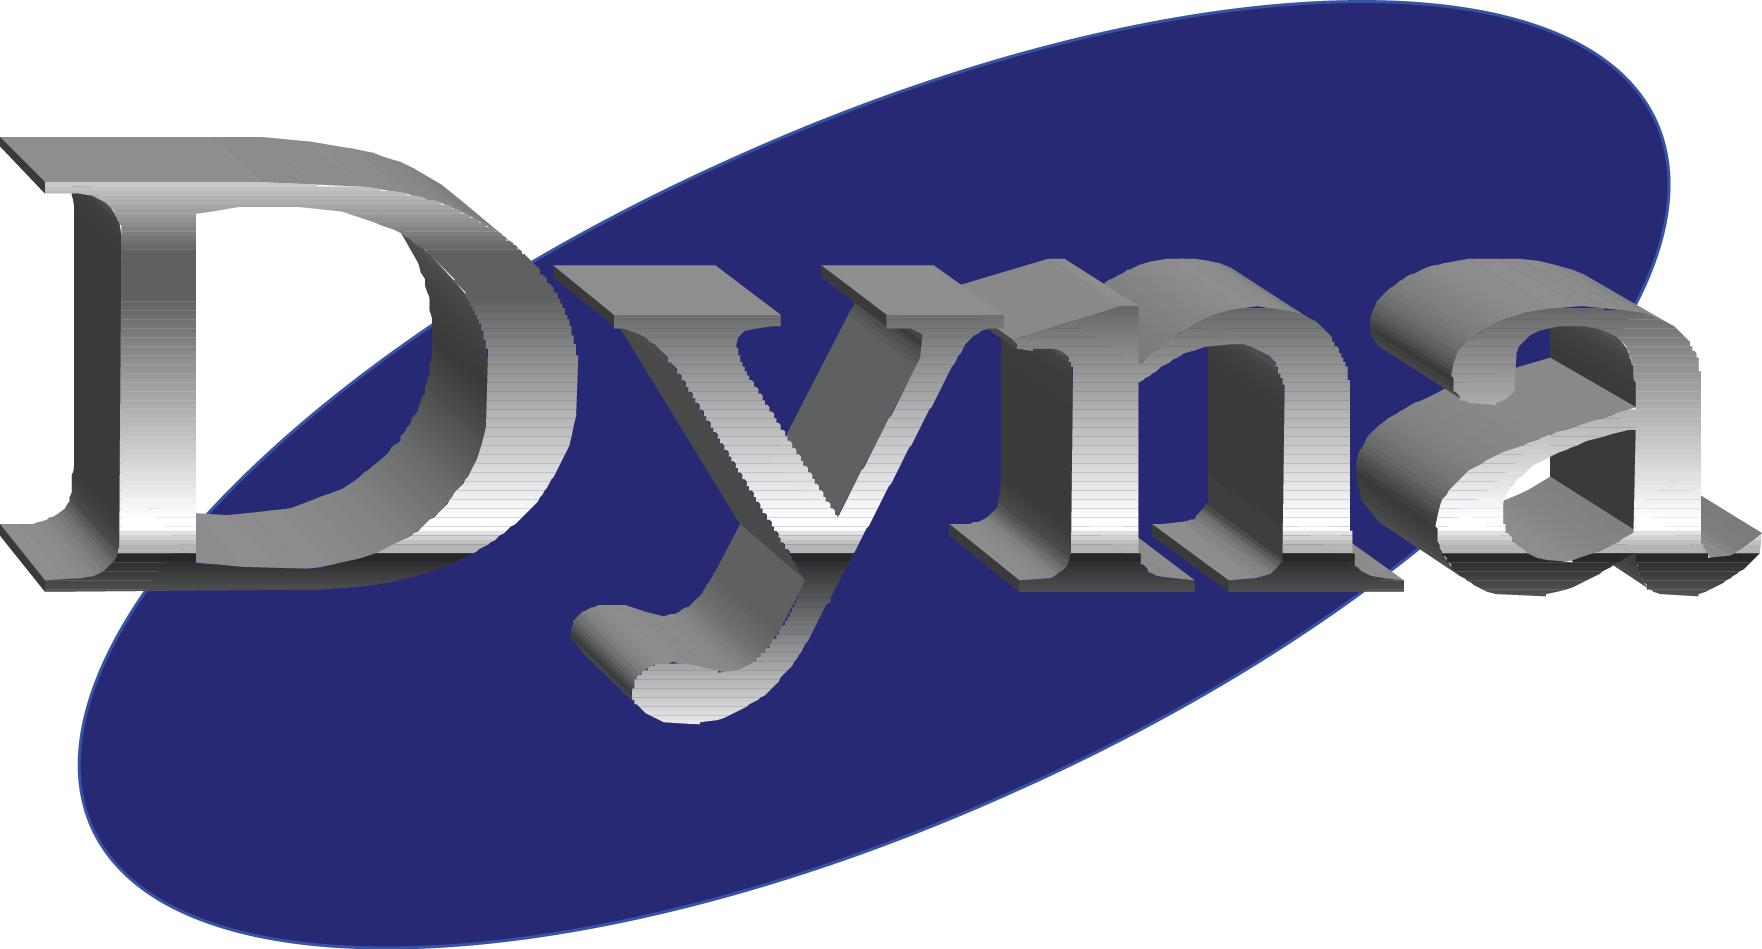 Dyna Cool Air Pte Ltd